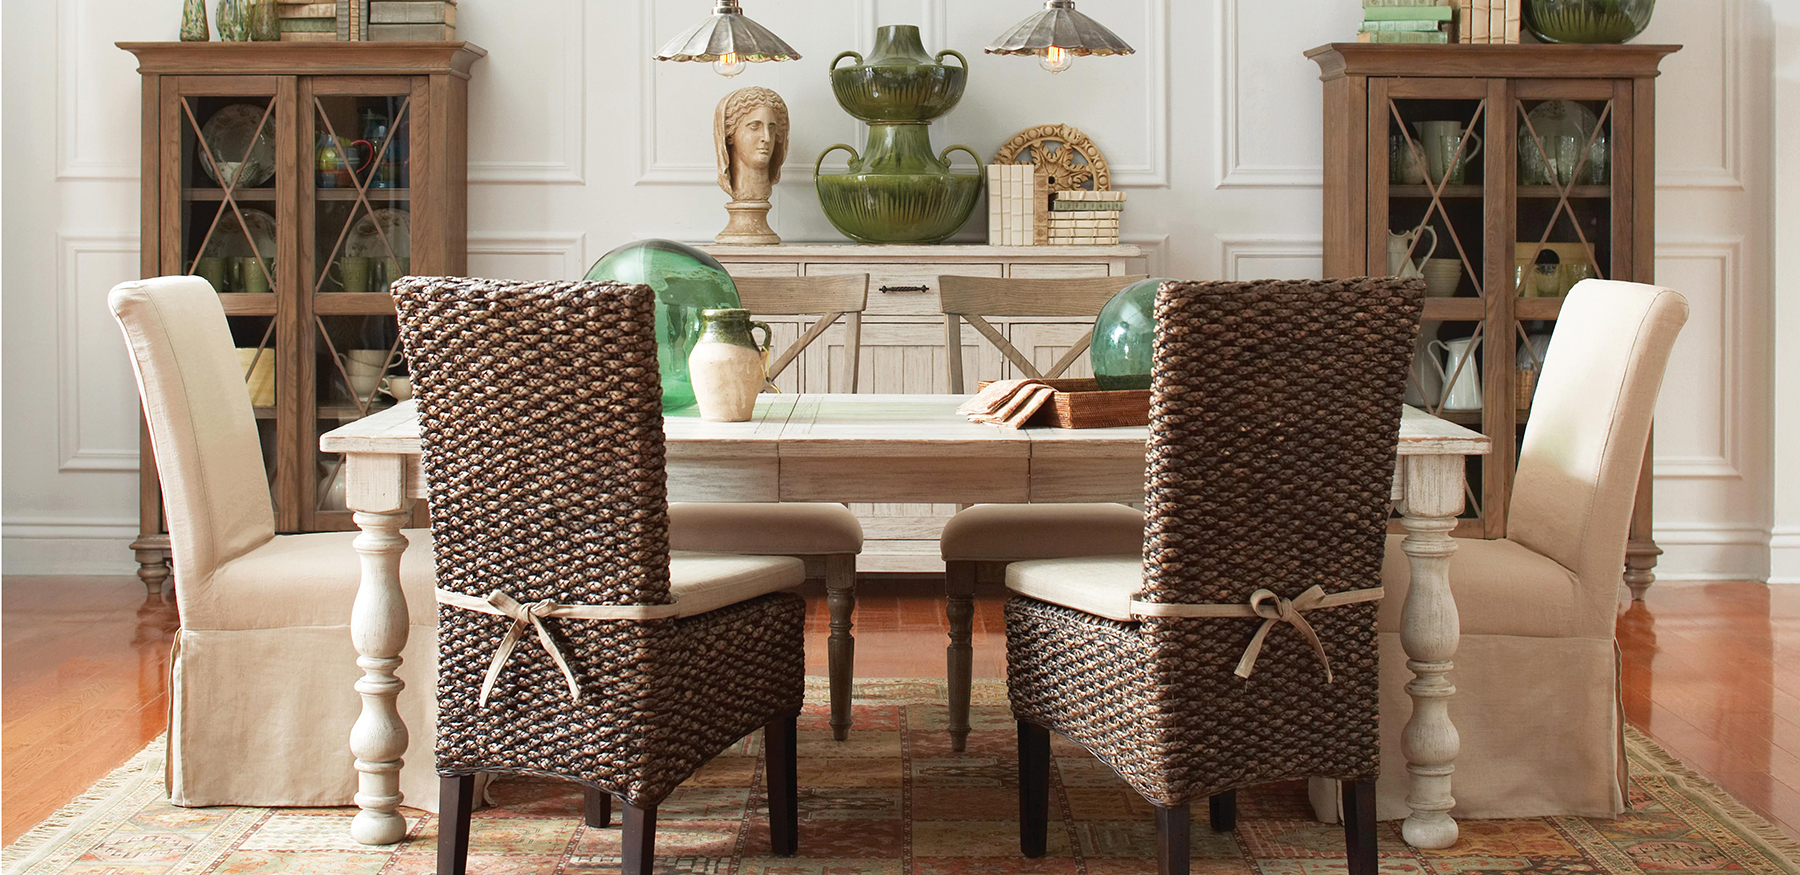 South Barrington Dining Room Project: Kansas City Homes And Style Features Our Project: Not Your